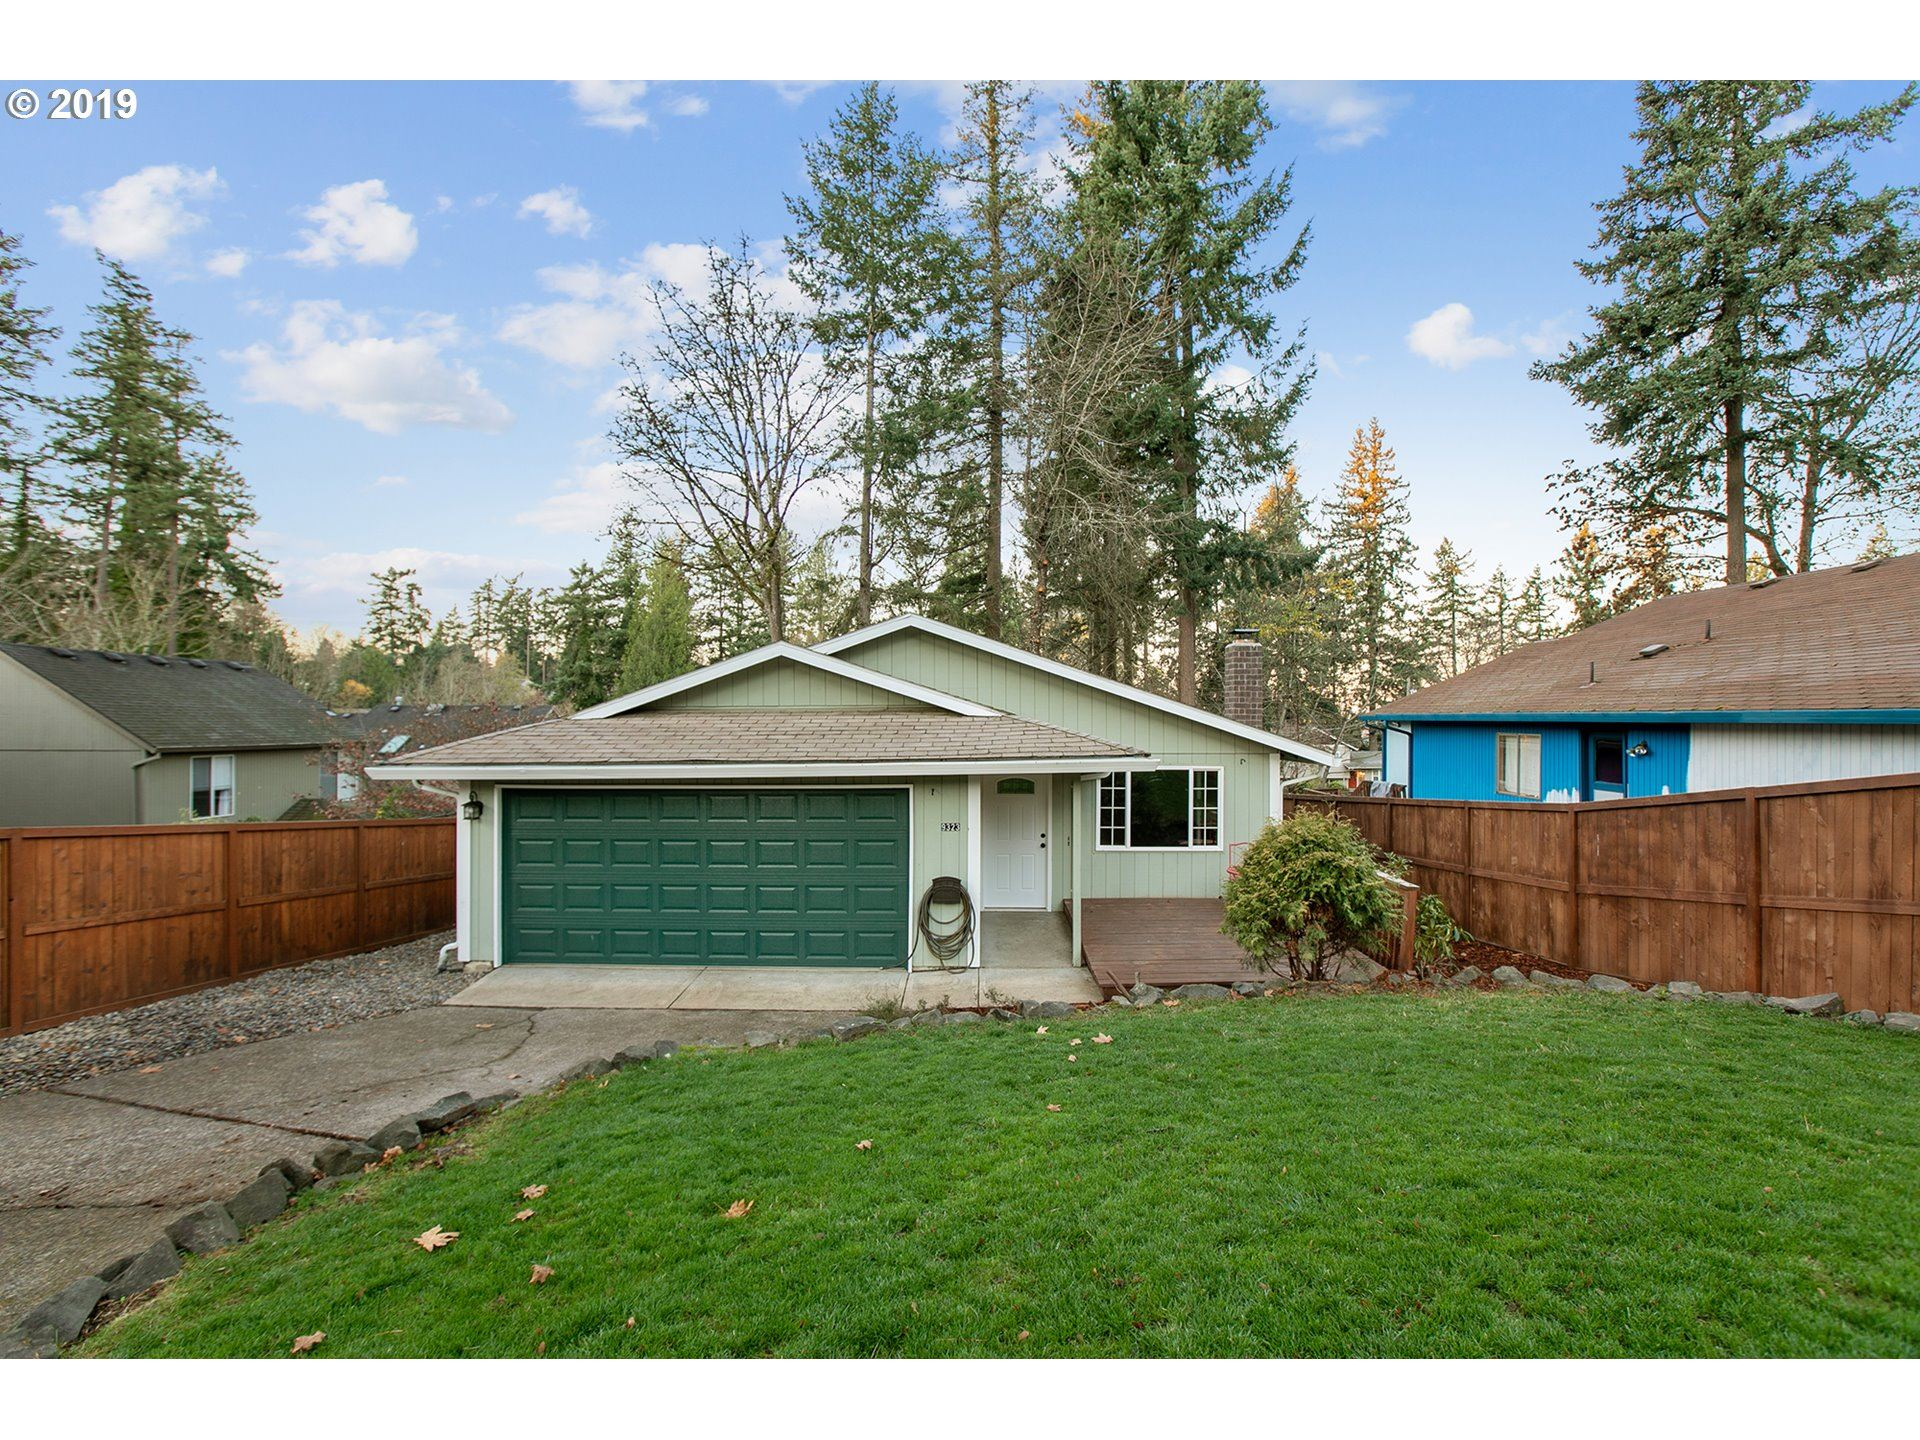 9323 SW 51ST AVE, Portland, OR 97219 - MLS#: 19535922